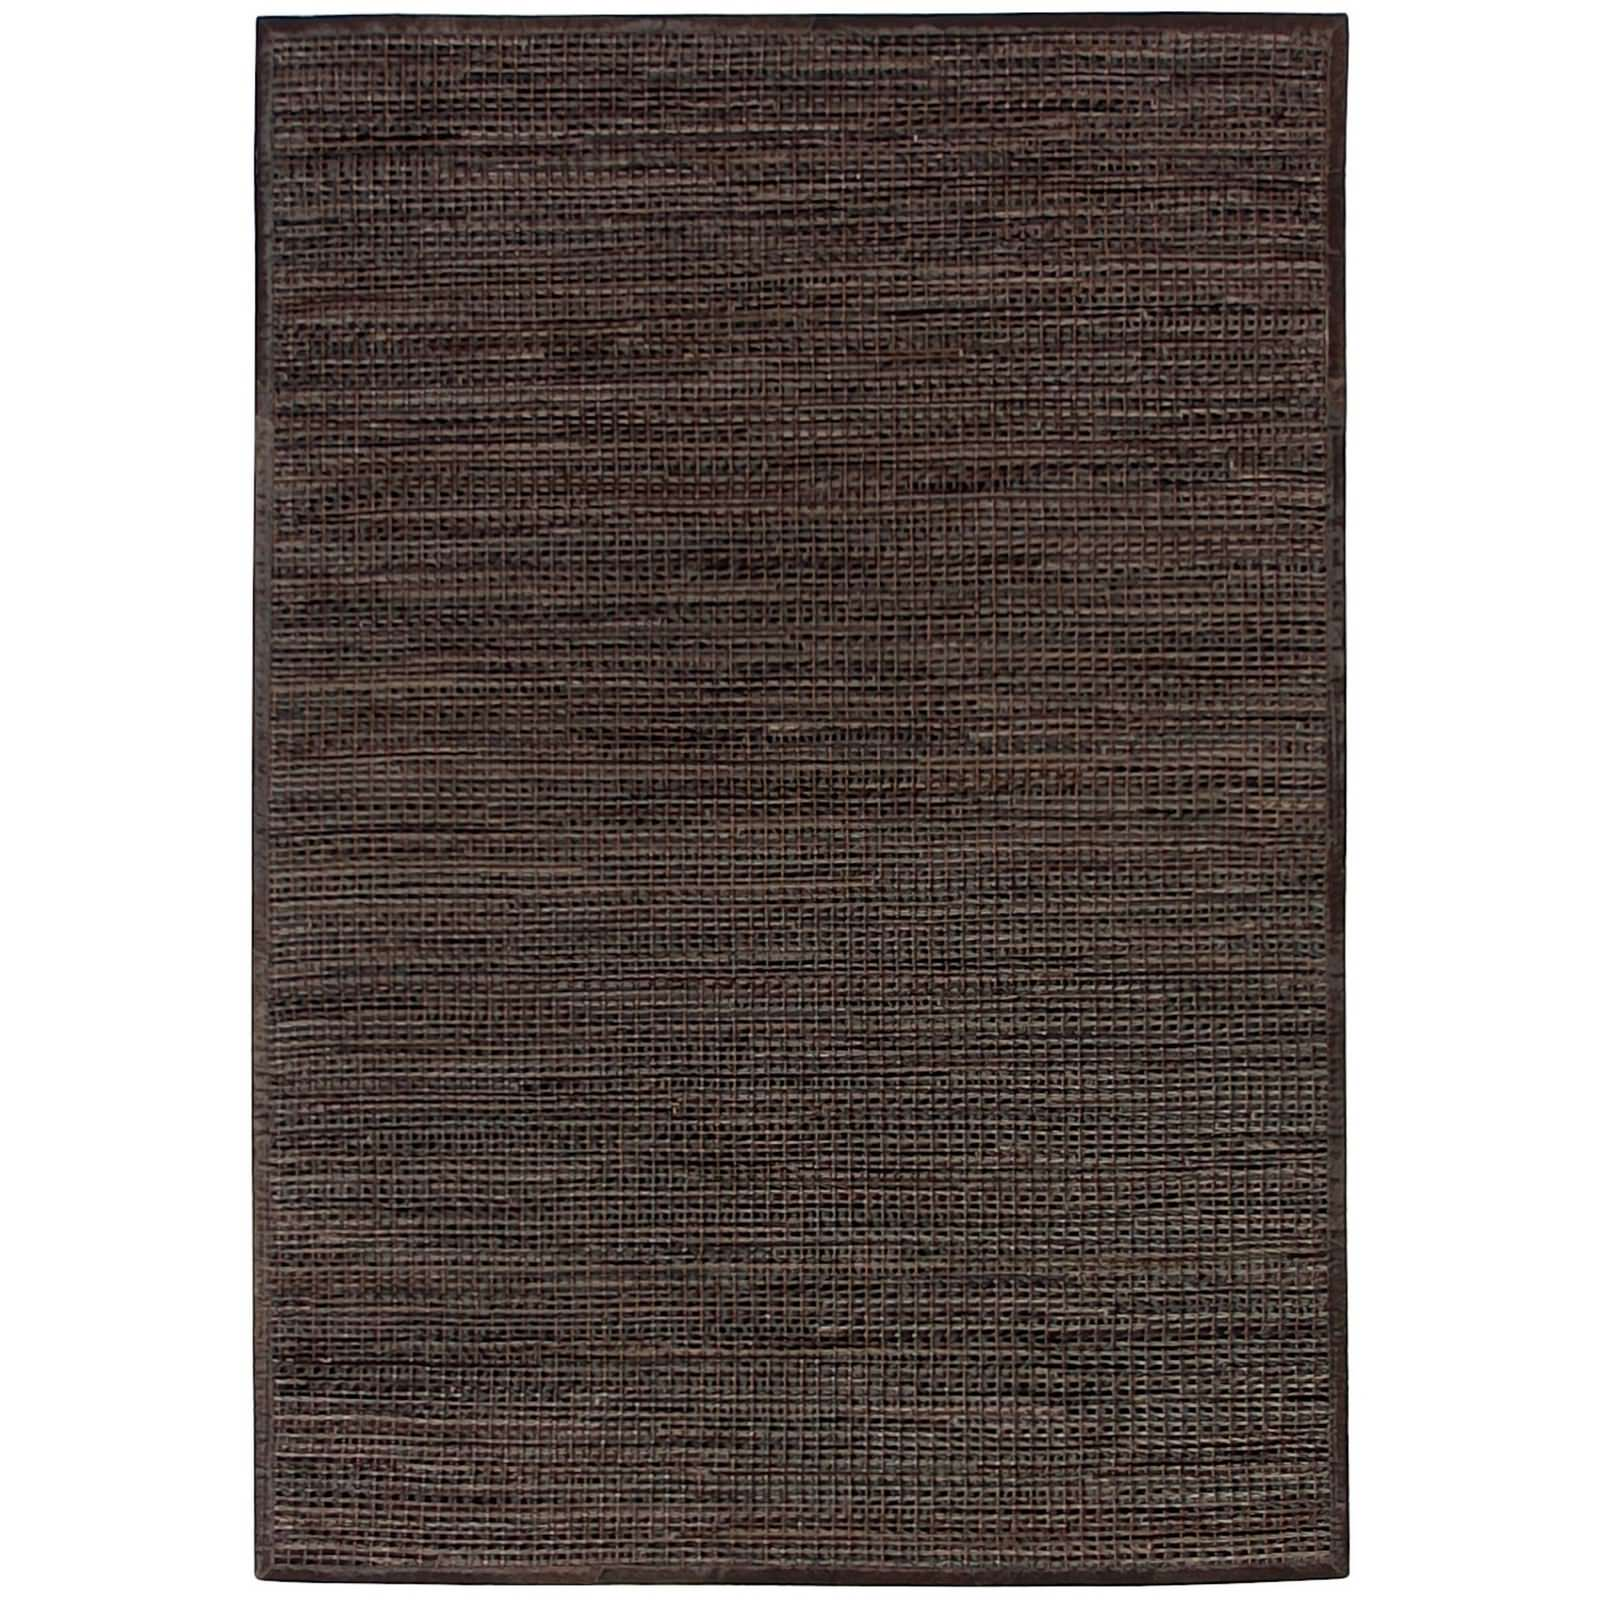 Chase Handwoven Hide & Leather Rug, 250x350cm, Cocoa